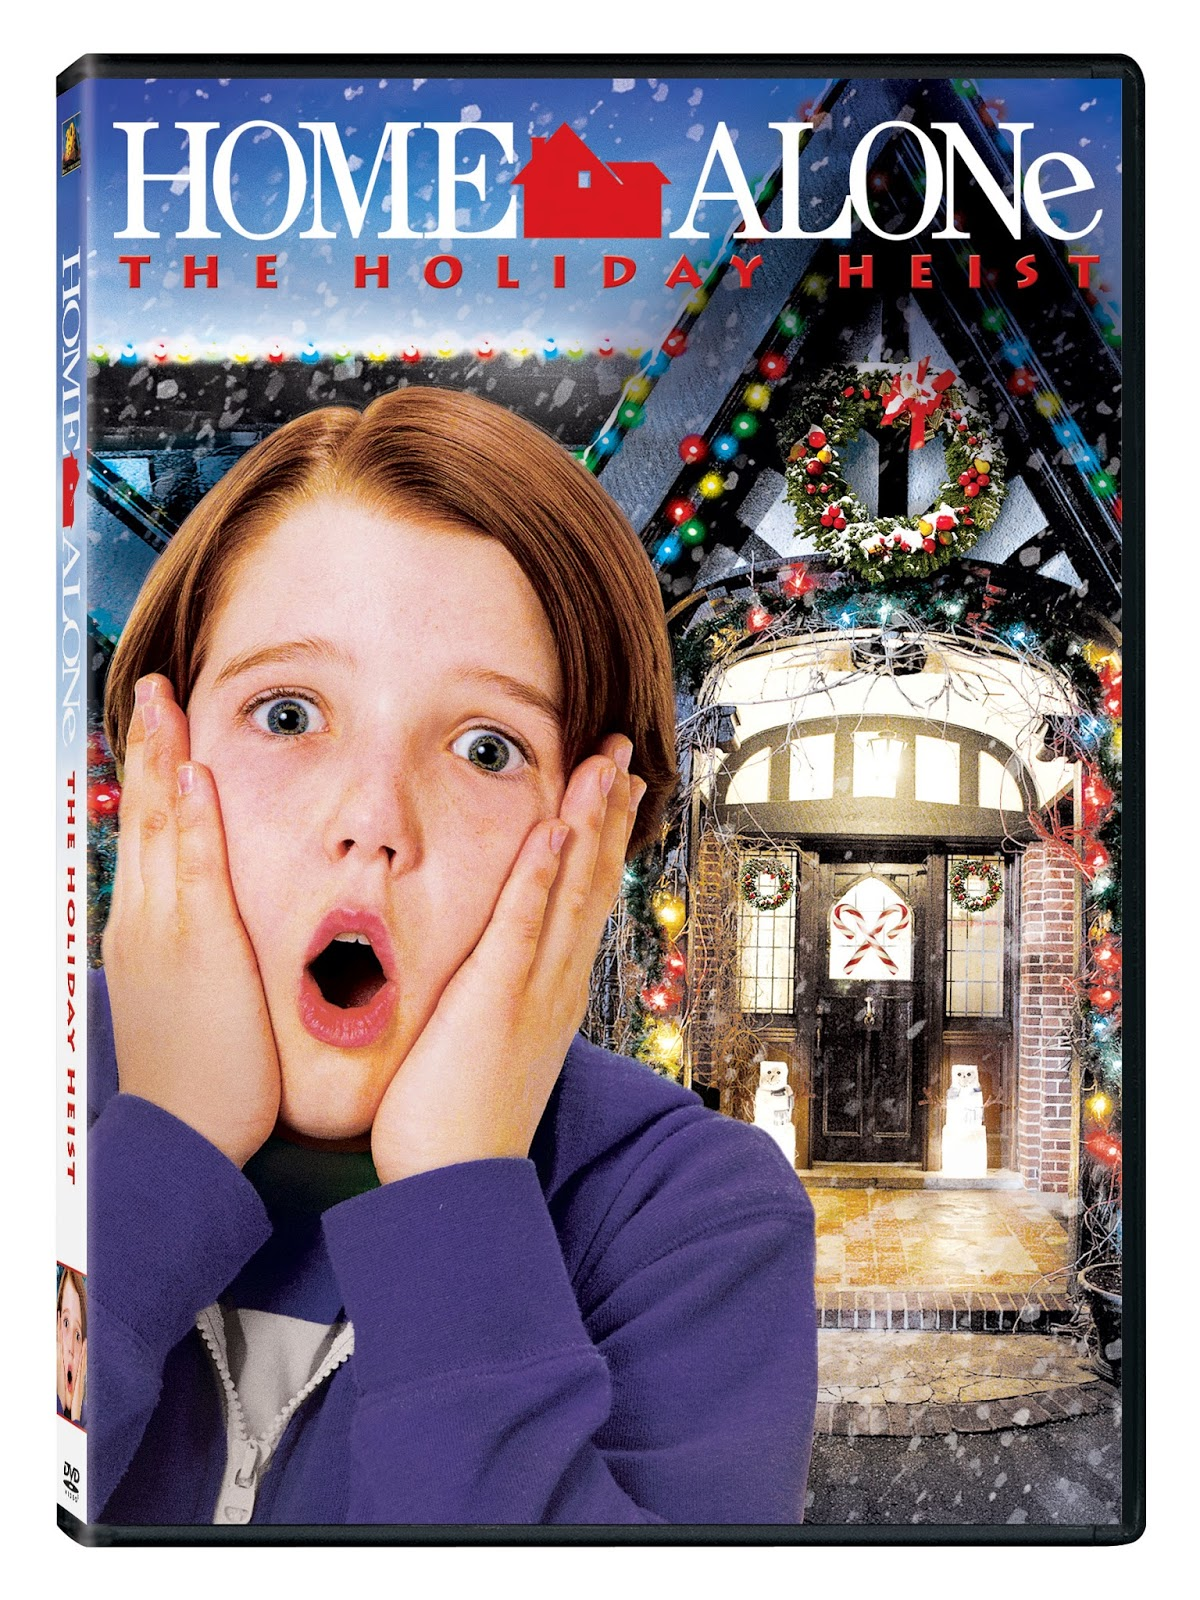 MOMMY BLOG EXPERT: Giveaway Home Alone Holiday Heist DVD ...